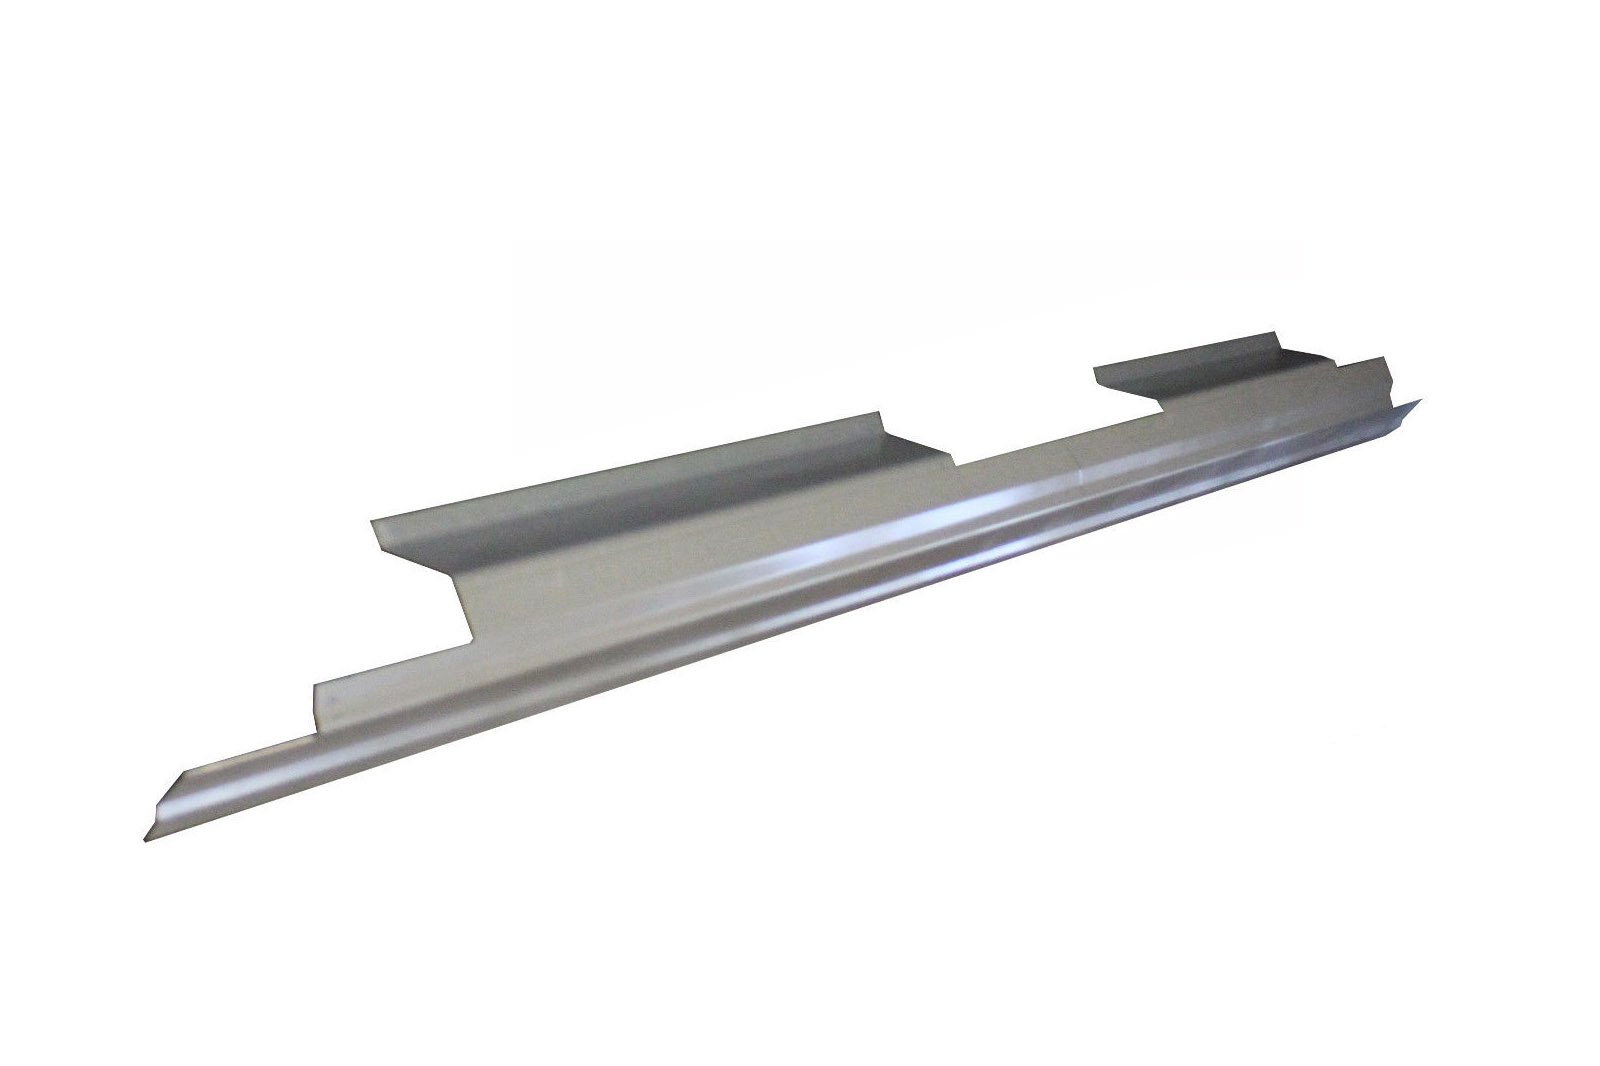 Motor City Sheet Metal - Works With 2004-2008 Ford F-150 4 Door Crew Cab Outer Rocker Panel Driver Side